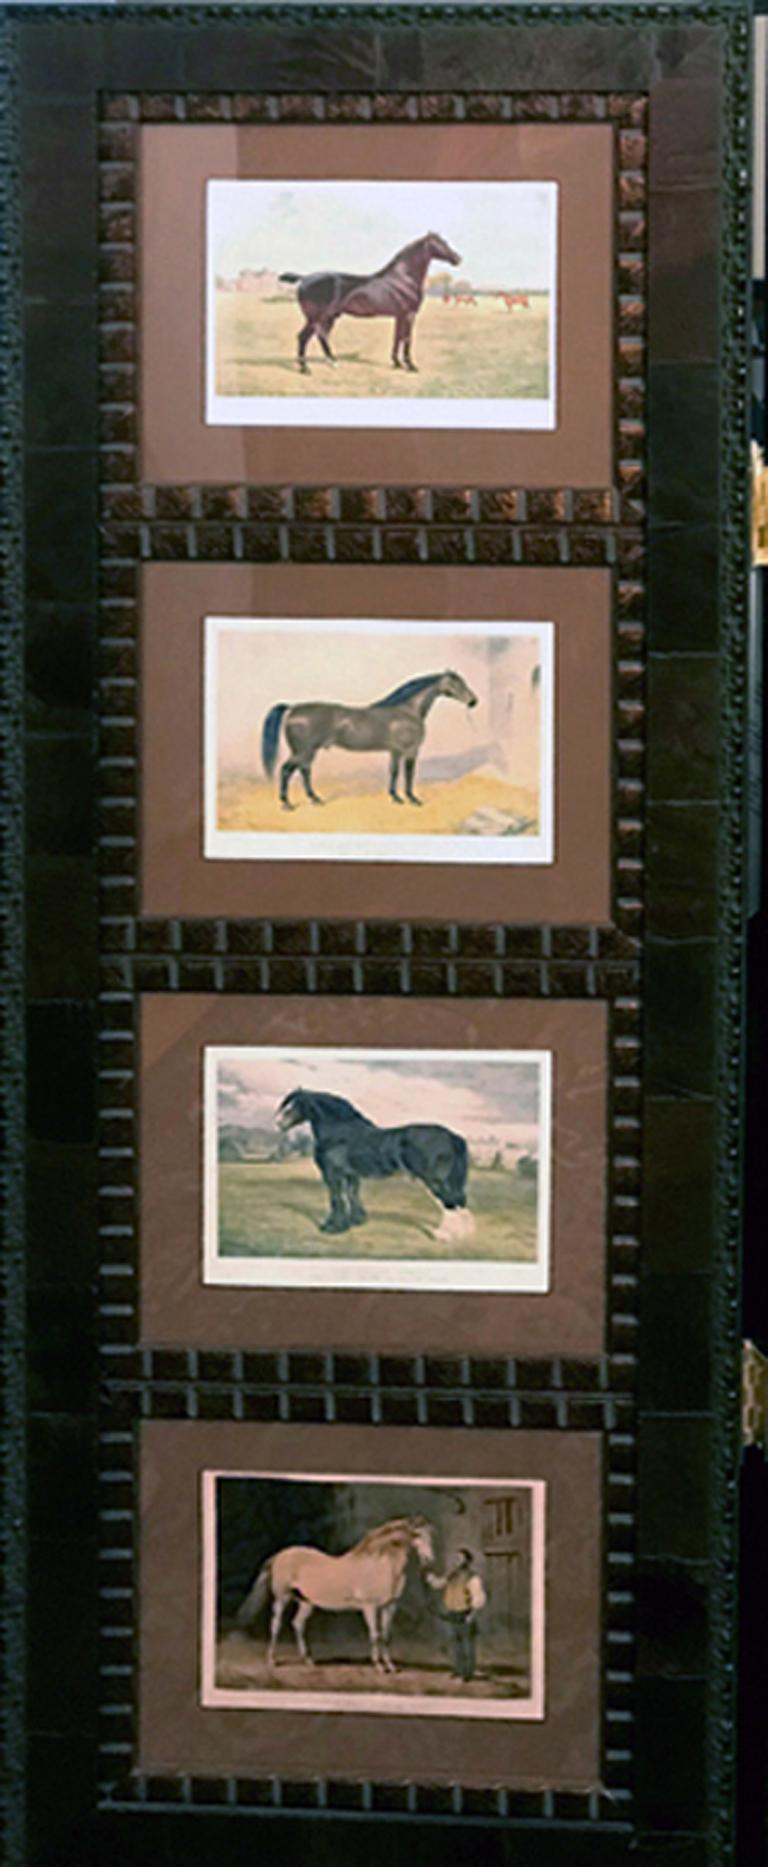 Samuel Sidney Horse 12 Images Cassell 3 Panel Screen Wood For Sale At 1stdibs